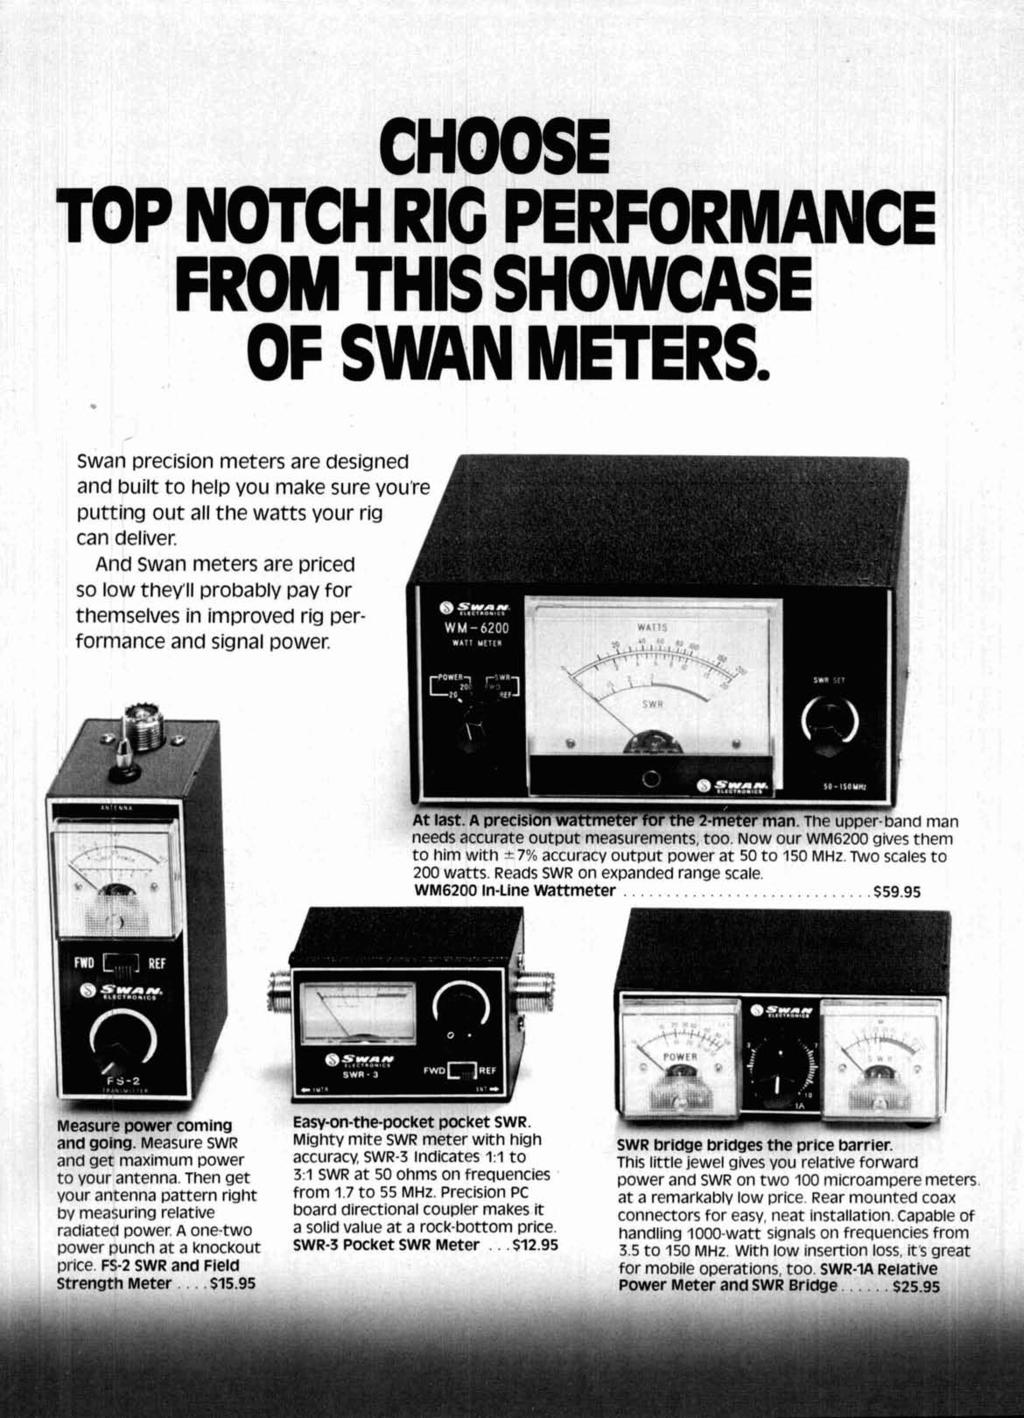 Radio September 1977 Frequency Synthesizer 44 Pi Network Design The R11 On My Interface Charger Board Is Smoking Hot And Turning Choose Top Notch Rg Performance From Ths Showcase Of Swan Meters Precision